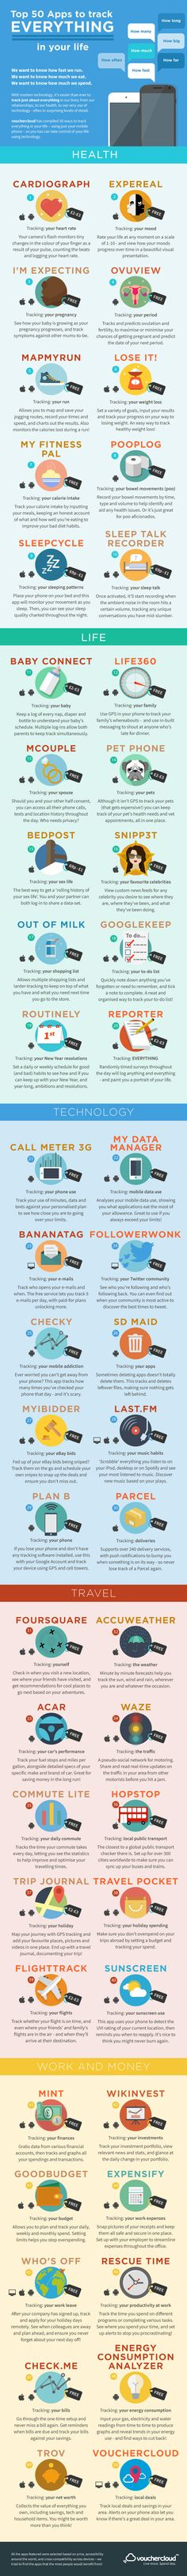 50 Apps To Optimize Your Time And Life With - #infographic